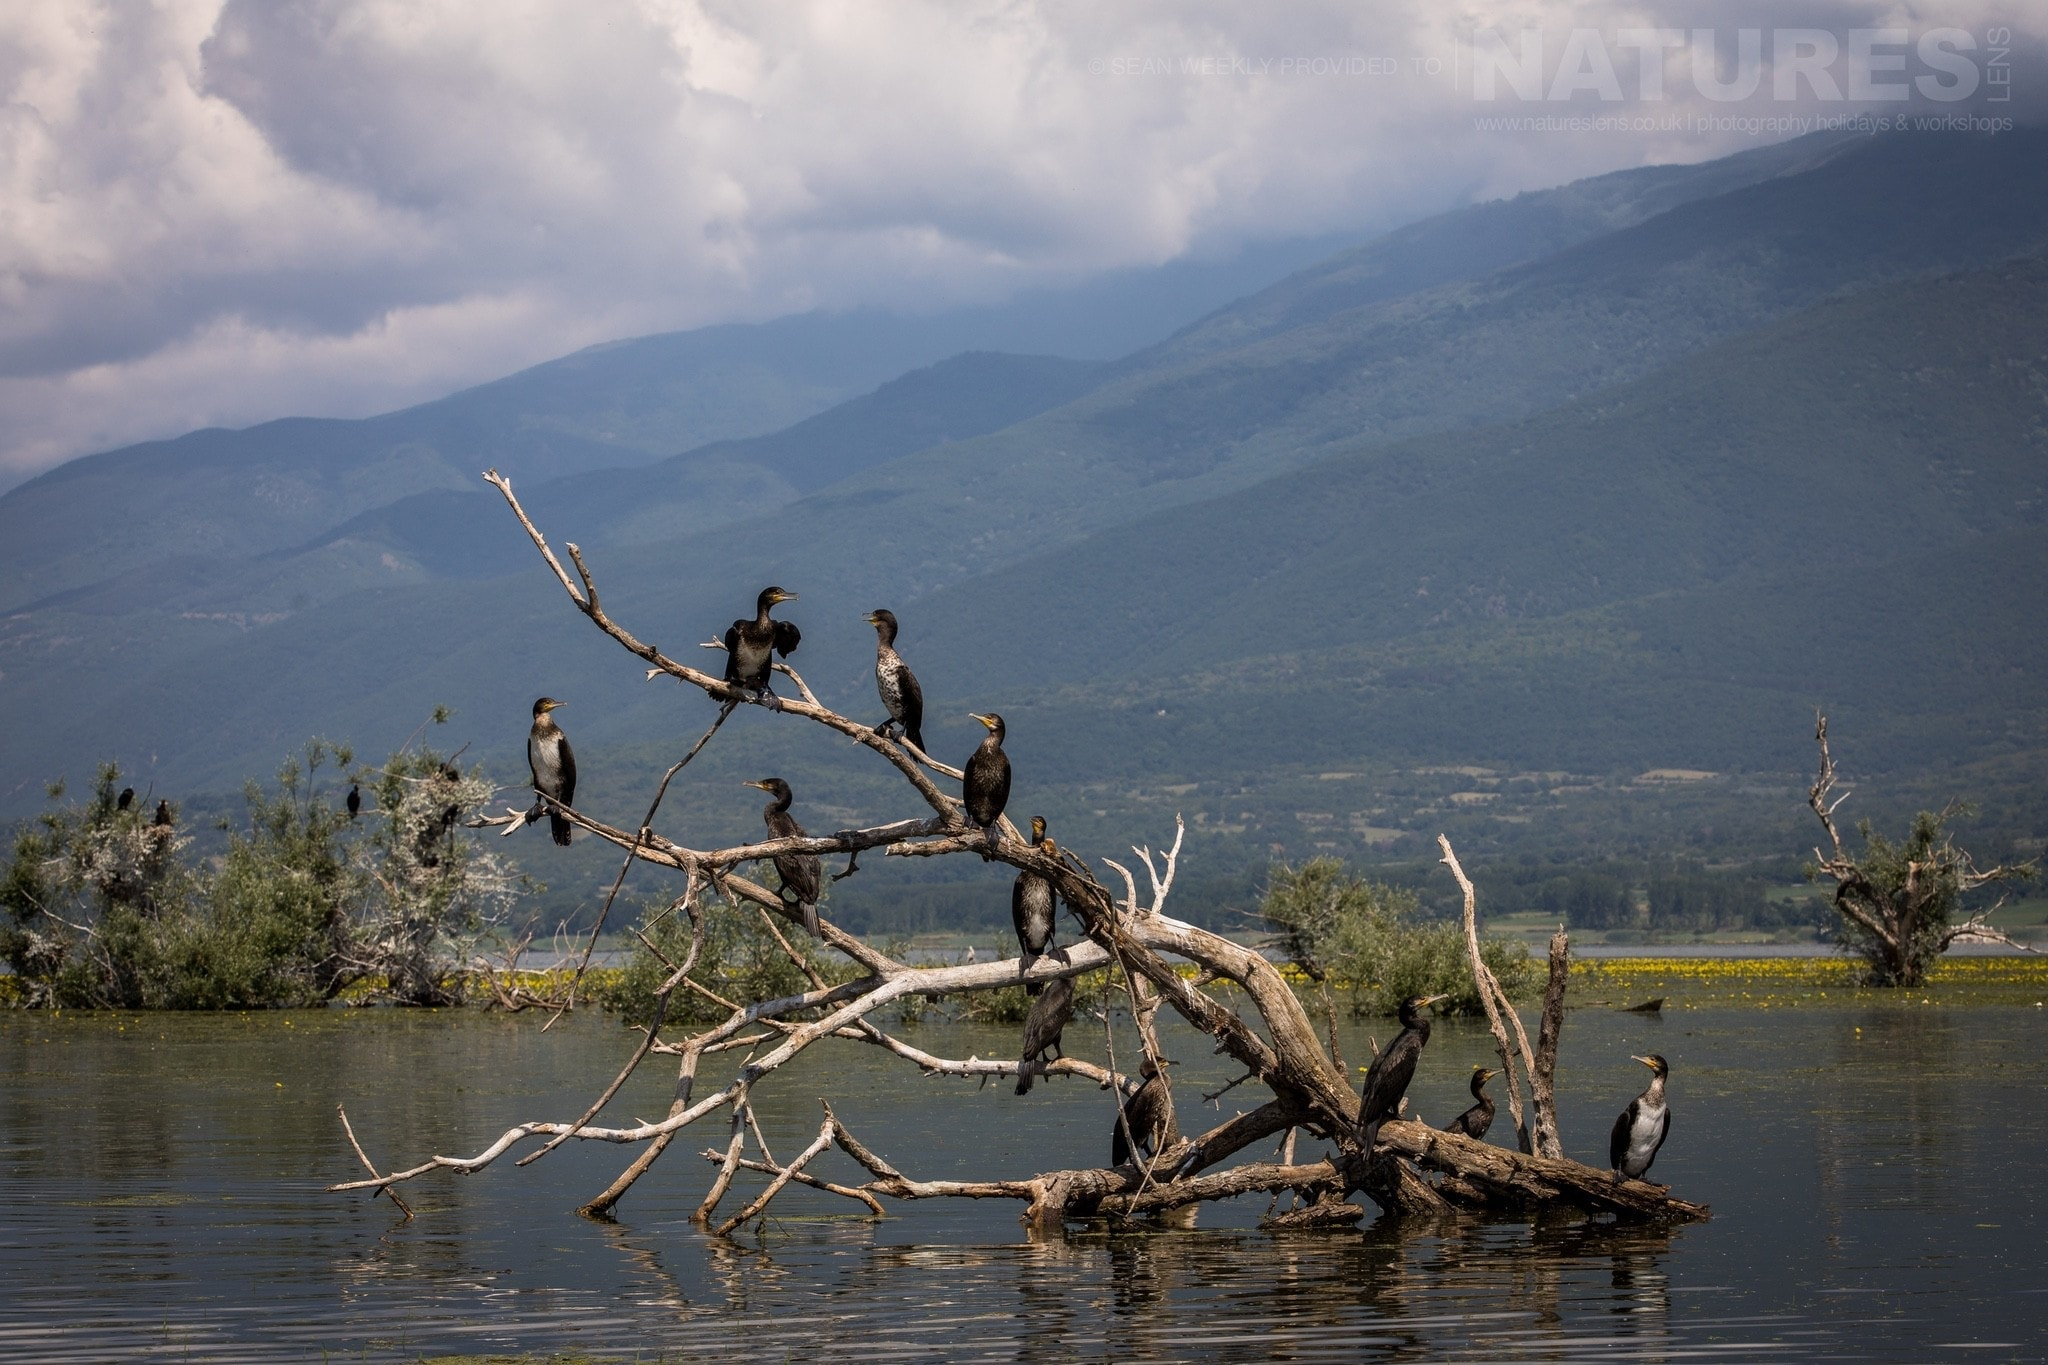 Comorants Drying Ther Wings In The Warming Greek Sun   Photographed During The NaturesLens Spring Birds Of Lake Kerkini Photography Holiday